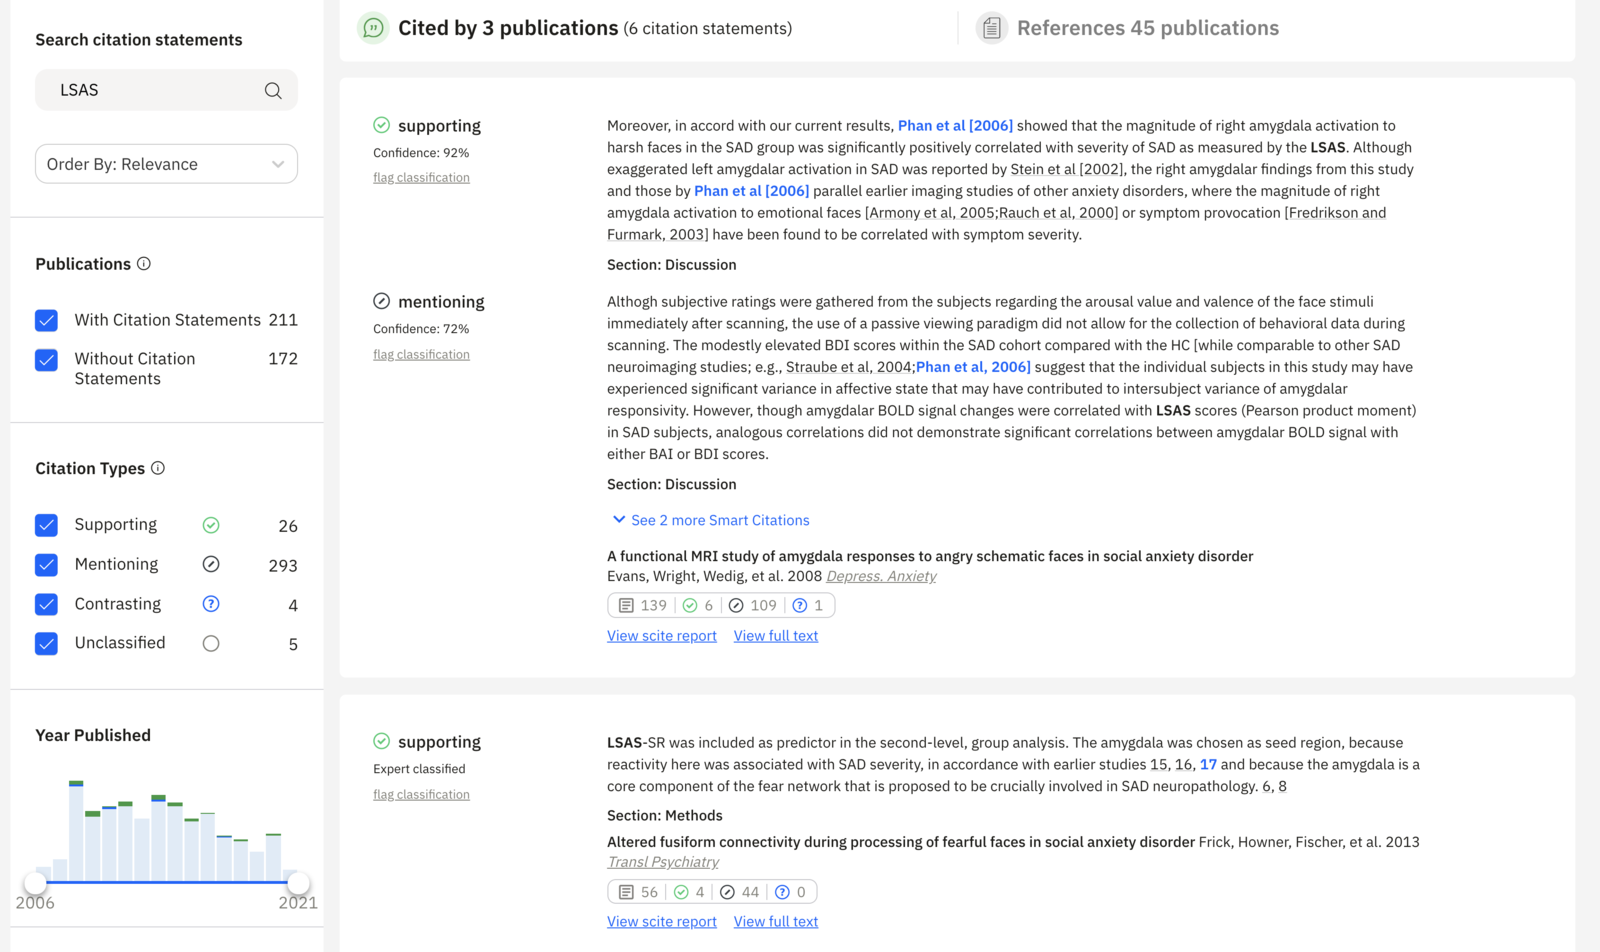 Example 6: Searching citation statements for discussion of the LSAS